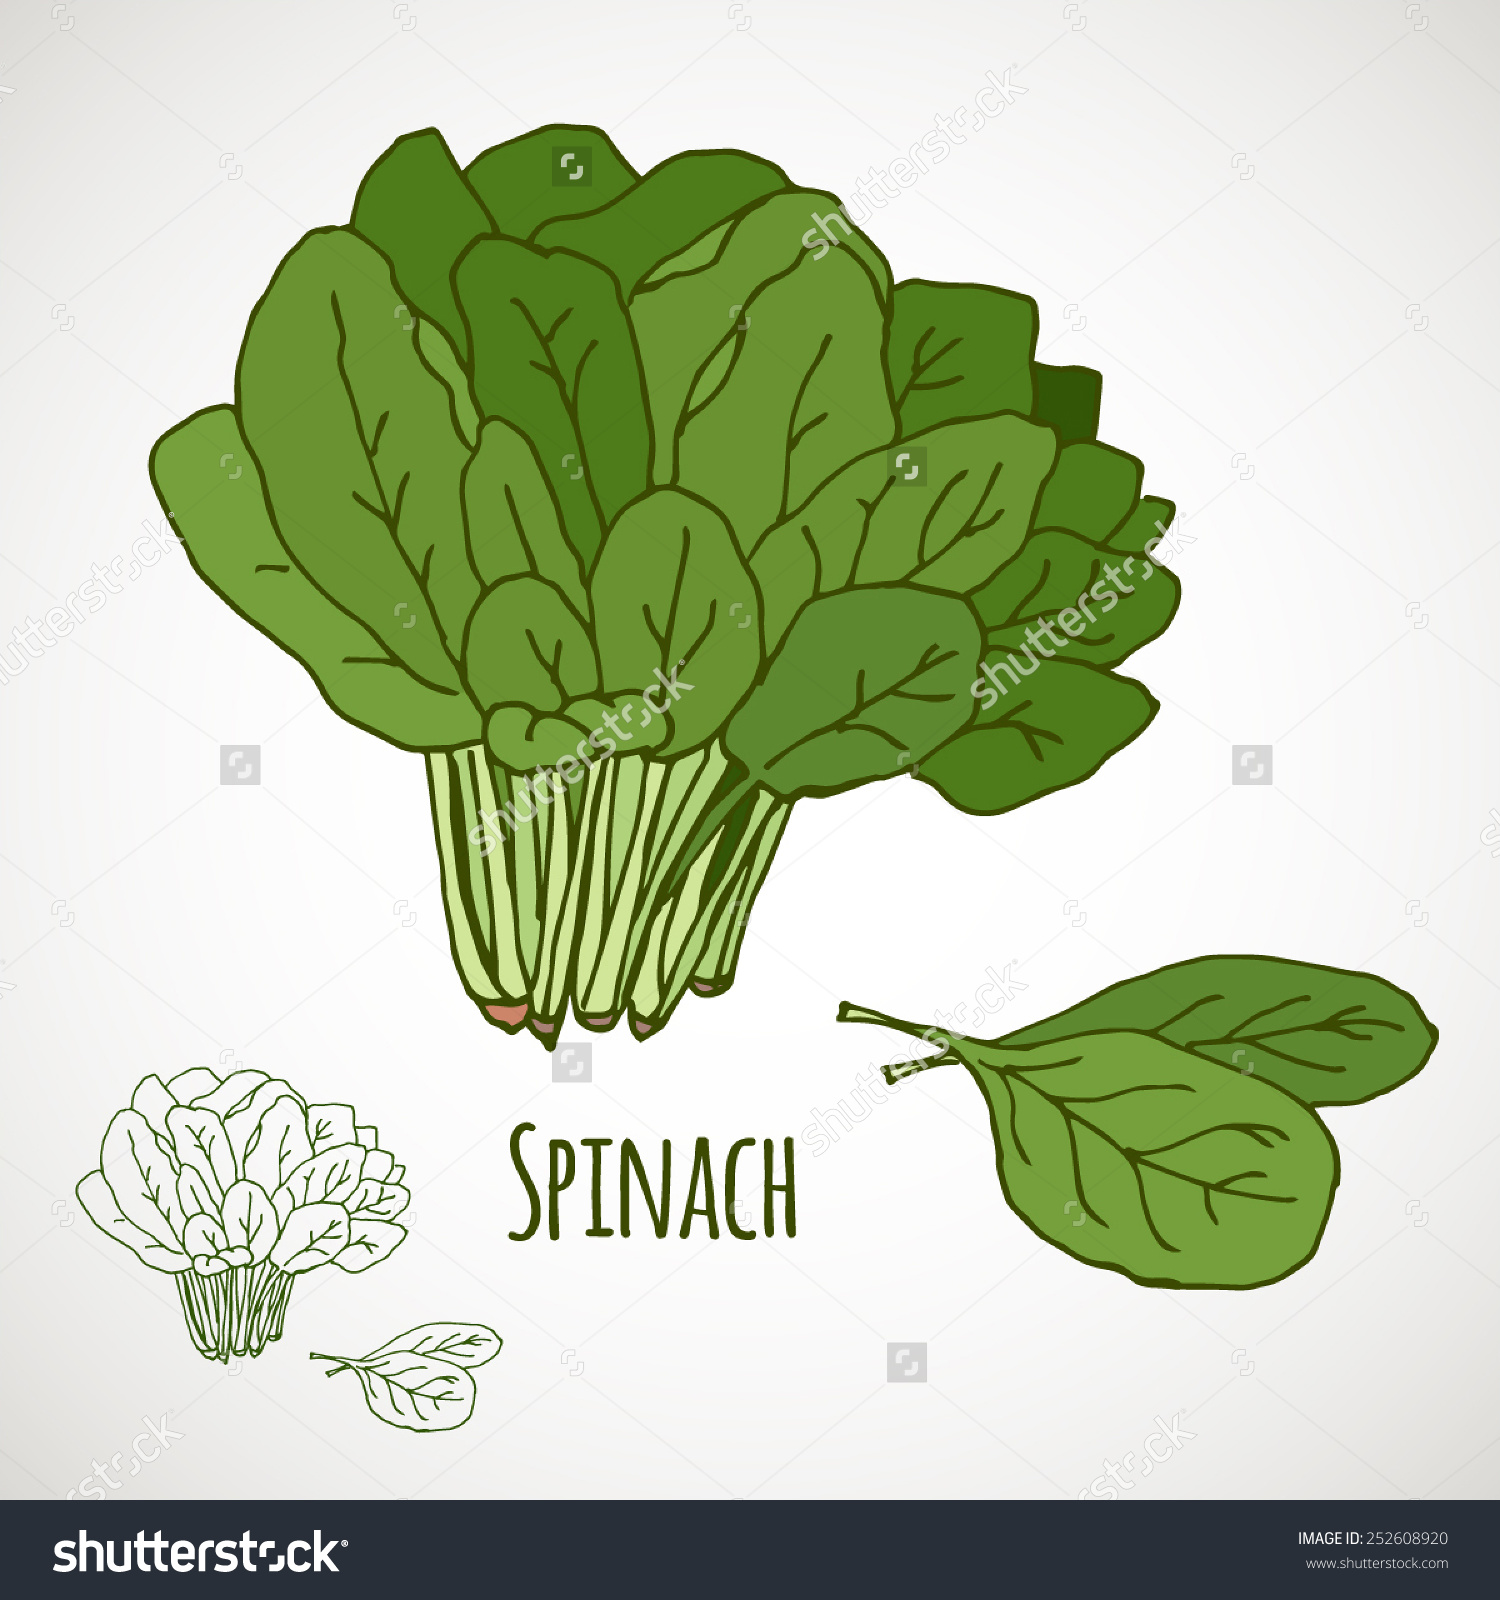 Spinach Green Salad Leaf Vegetable Healthy Stock Vector 252608920.